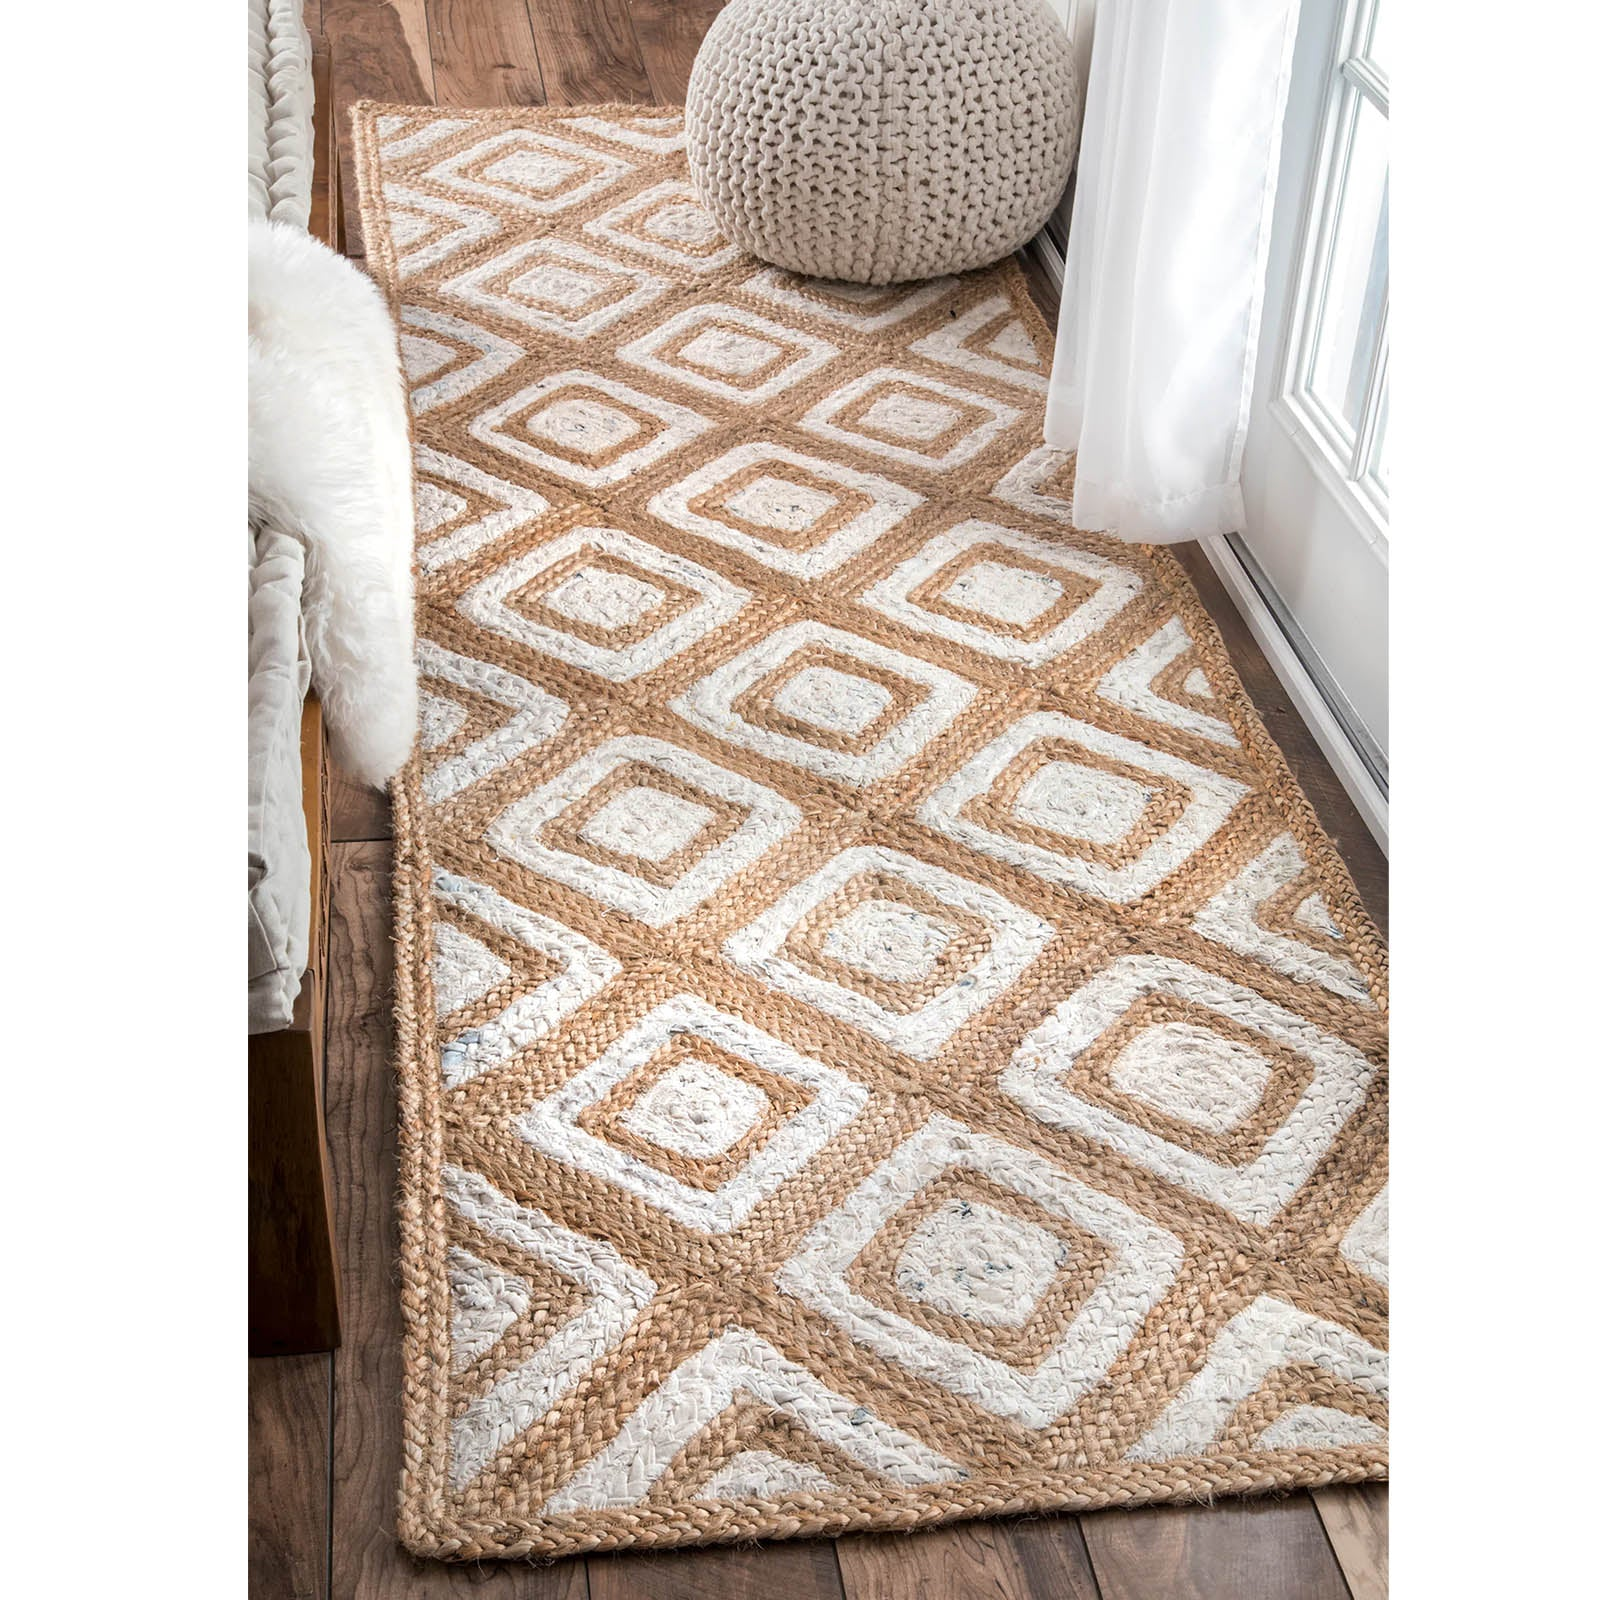 90X300 cm Braided handmade Jute Rug JH-2342-long